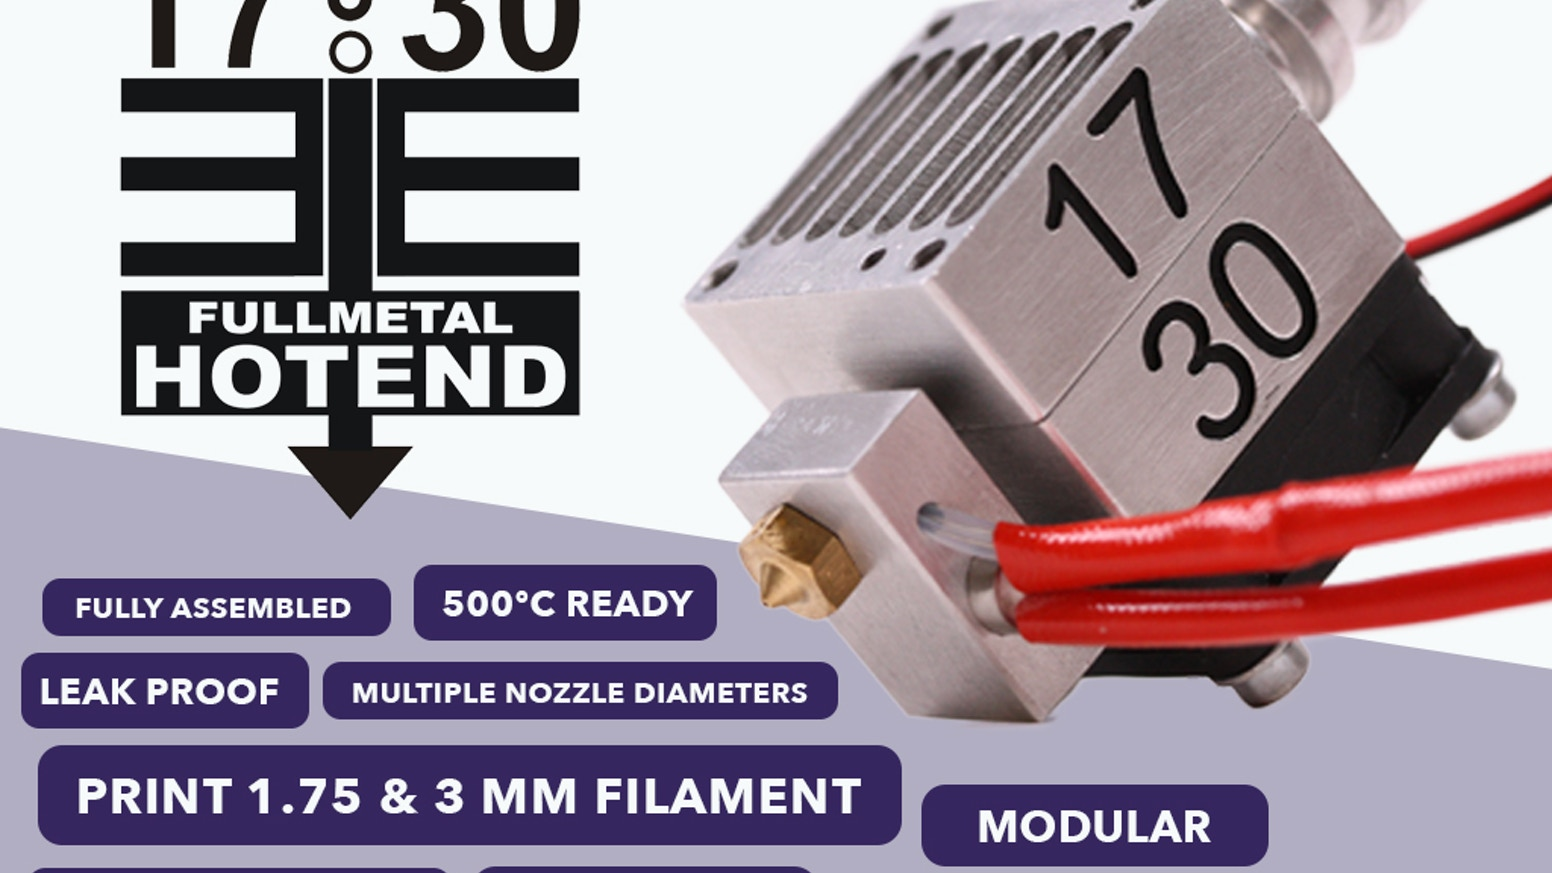 Innovative modular Full Metal Hotend capable of printing 1.75 & 3 mm filament. Leak proof & optimized for High Performance 3D-Printing.